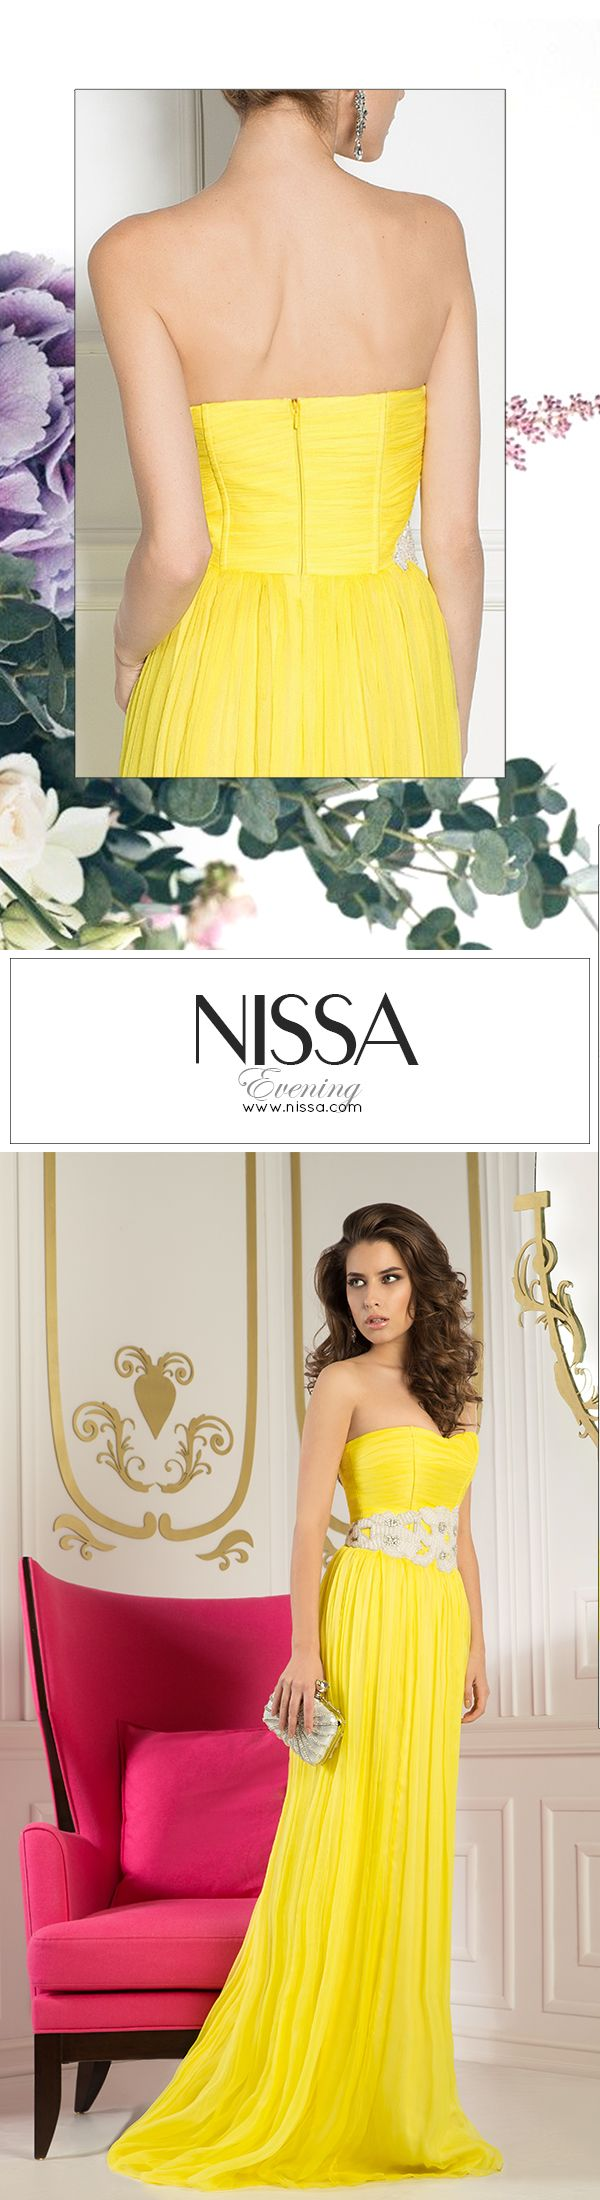 NISSA Evening Collection 2015  #nissa #dress #maxi # #evening #ss2015 #fashion #style #look #gorgeous #long #yellow